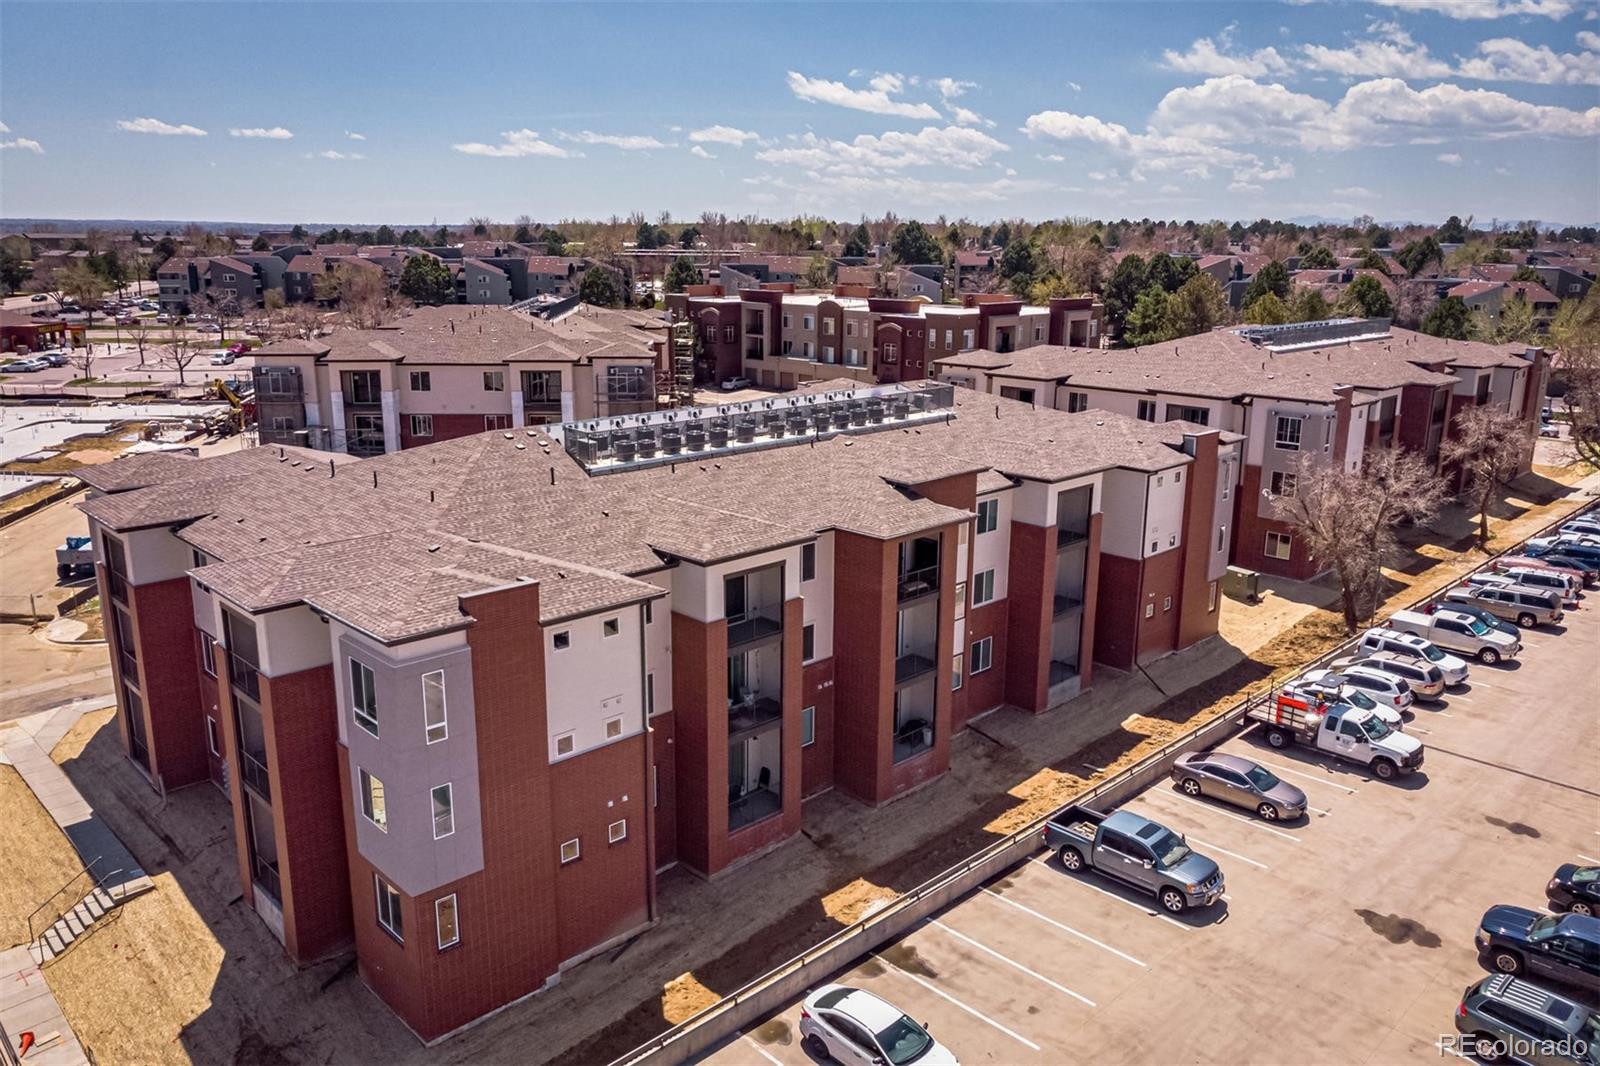 MLS# 4439296 - 14331 E Tennessee Avenue #101, Aurora, CO 80012